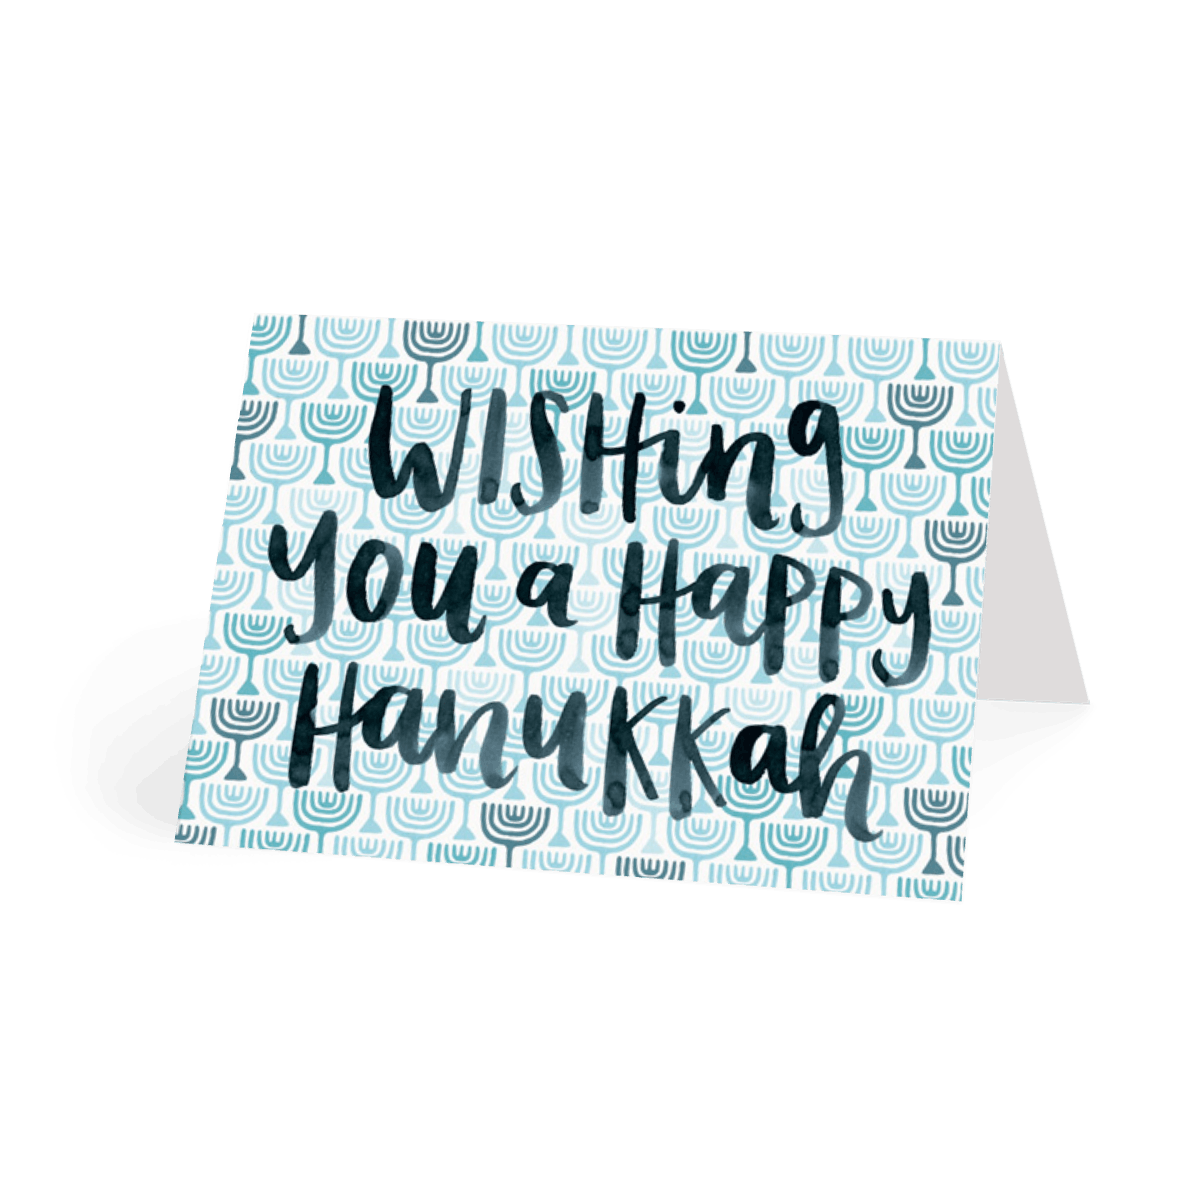 Https%3a%2f%2fwww.papier.com%2fproduct image%2f53737%2f14%2fhanukkah wishes 12939 front 1542042394.png?ixlib=rb 1.1